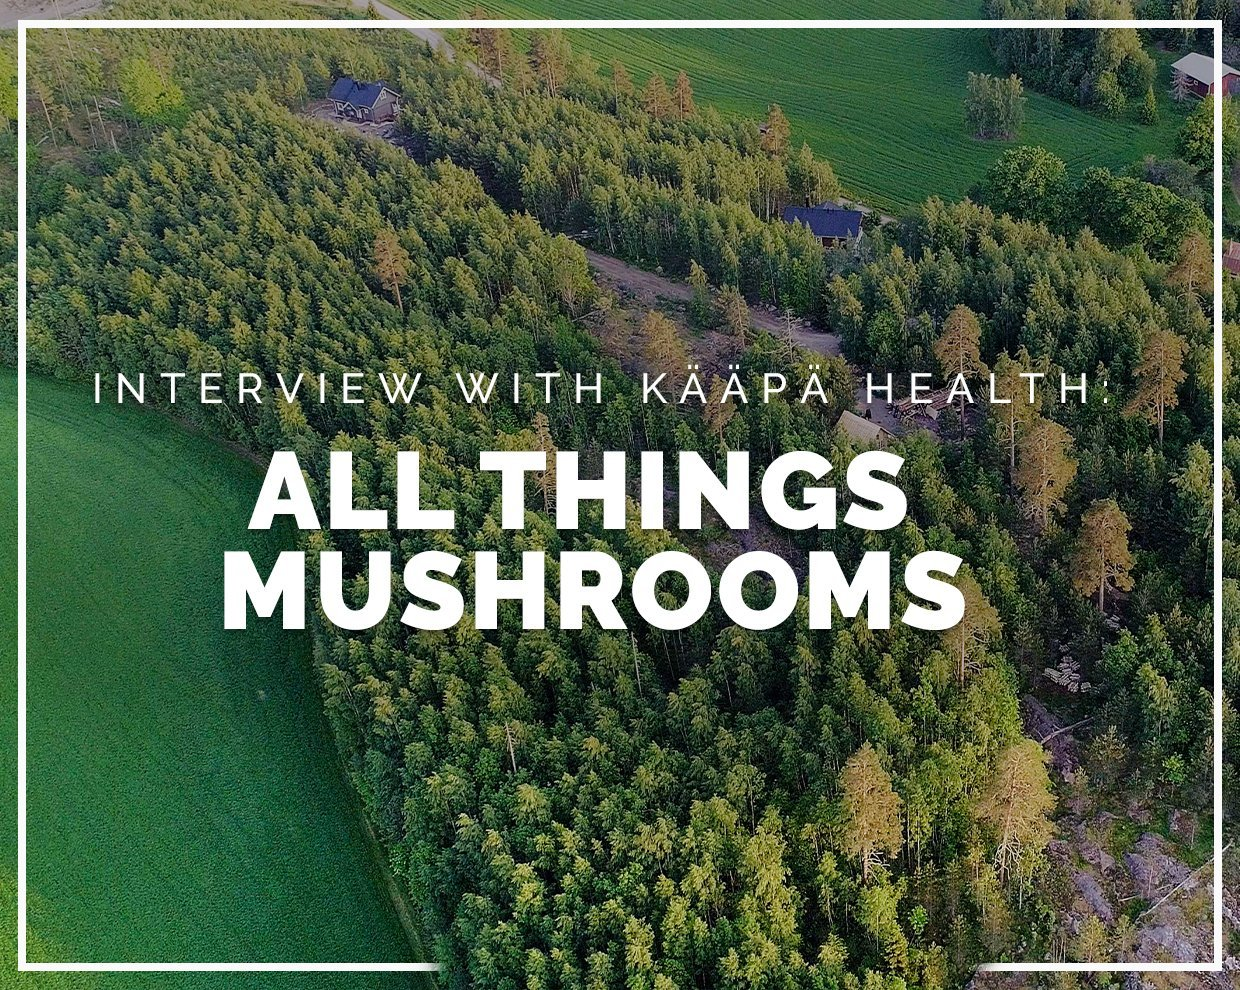 INTERVIEW WITH KÄÄPÄ HEALTH: All things mushrooms